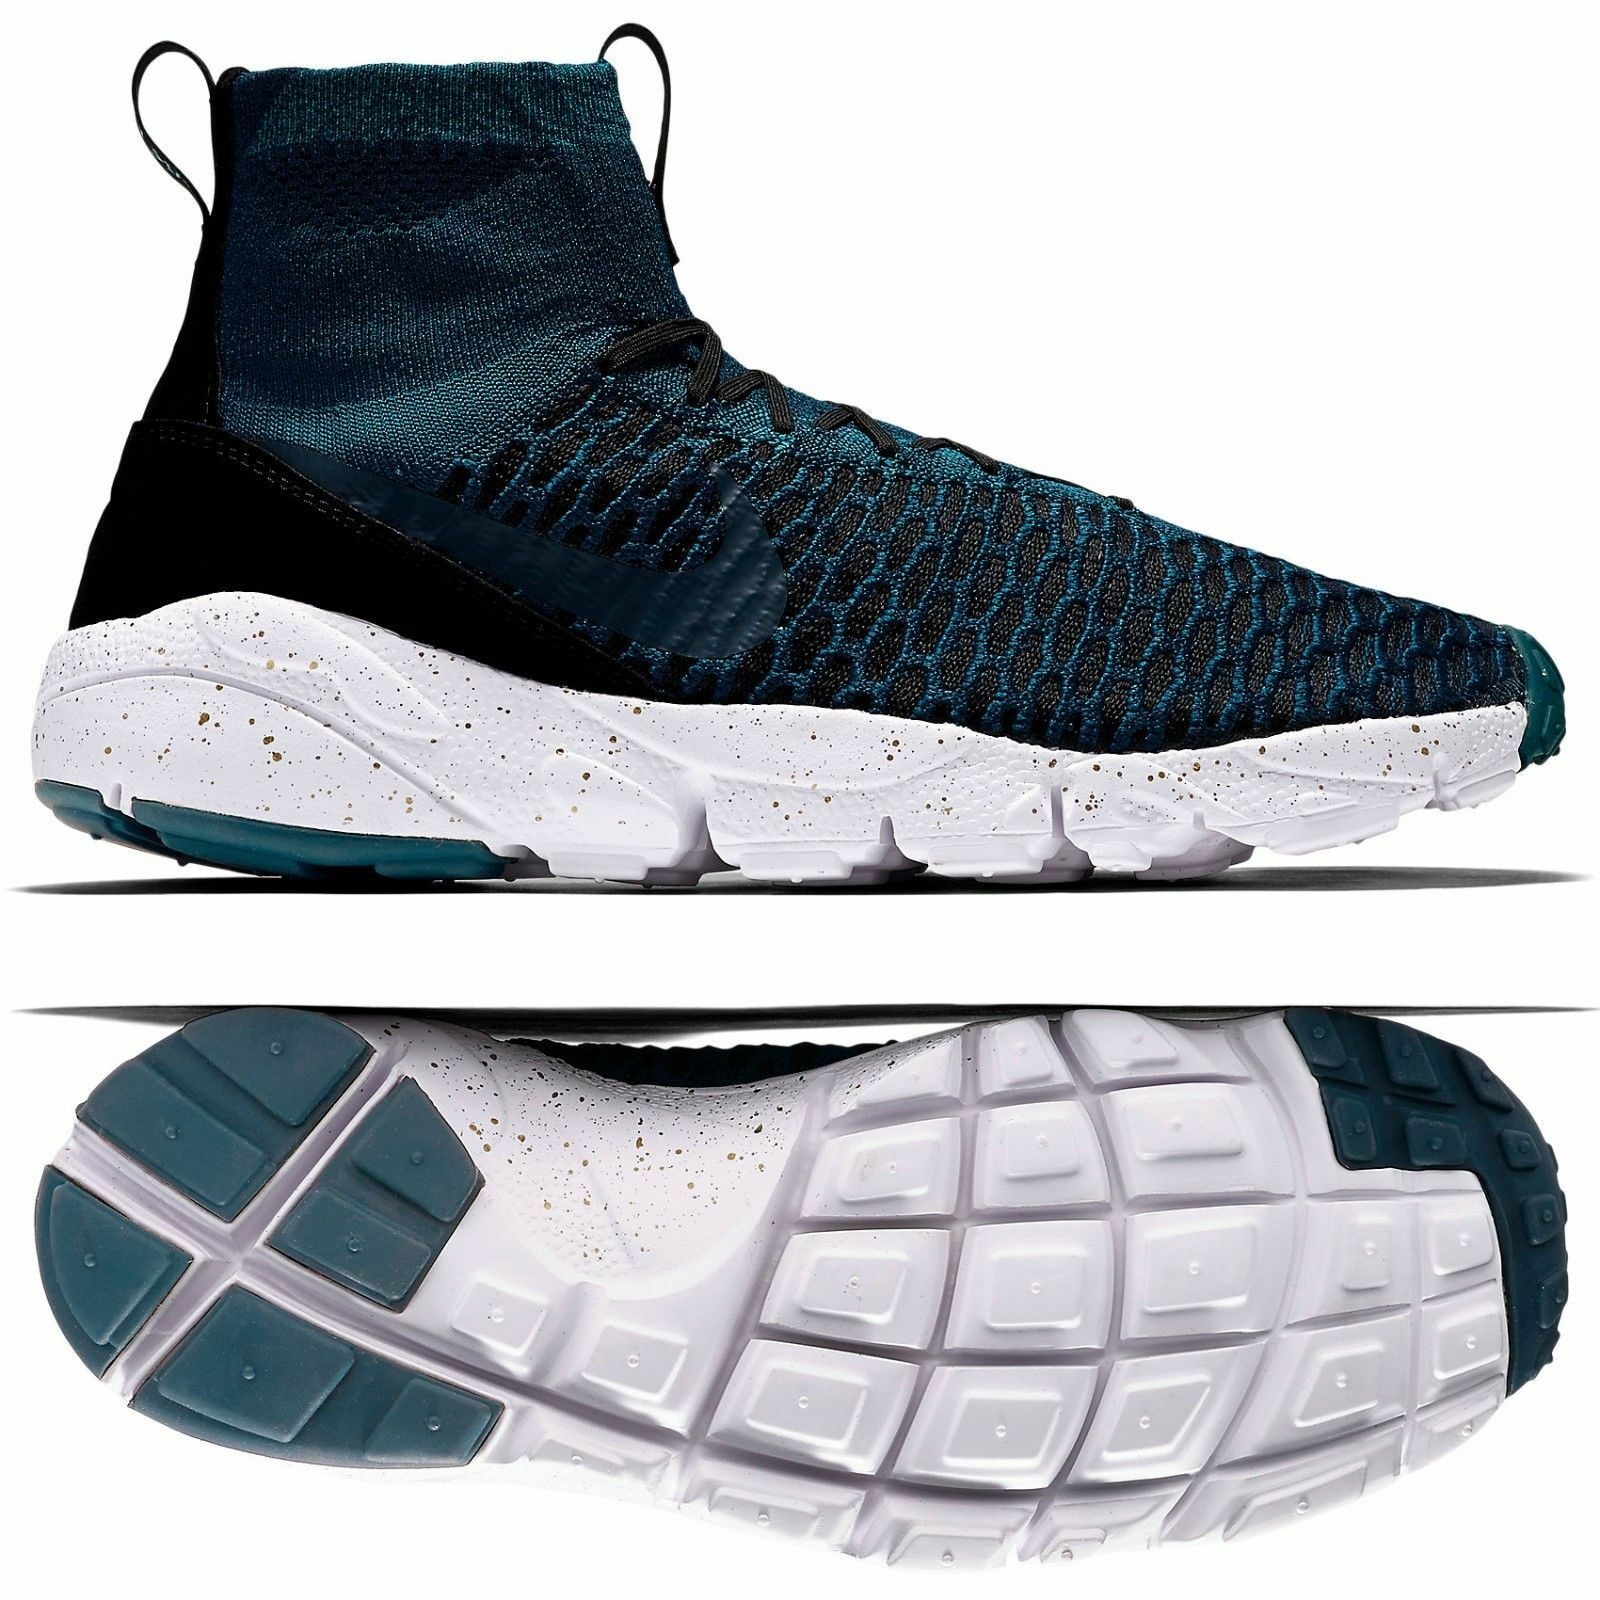 Sz 11 Nike Air Footscape Magista Flyknit FC 830600-300 Turquoise Training Shoes